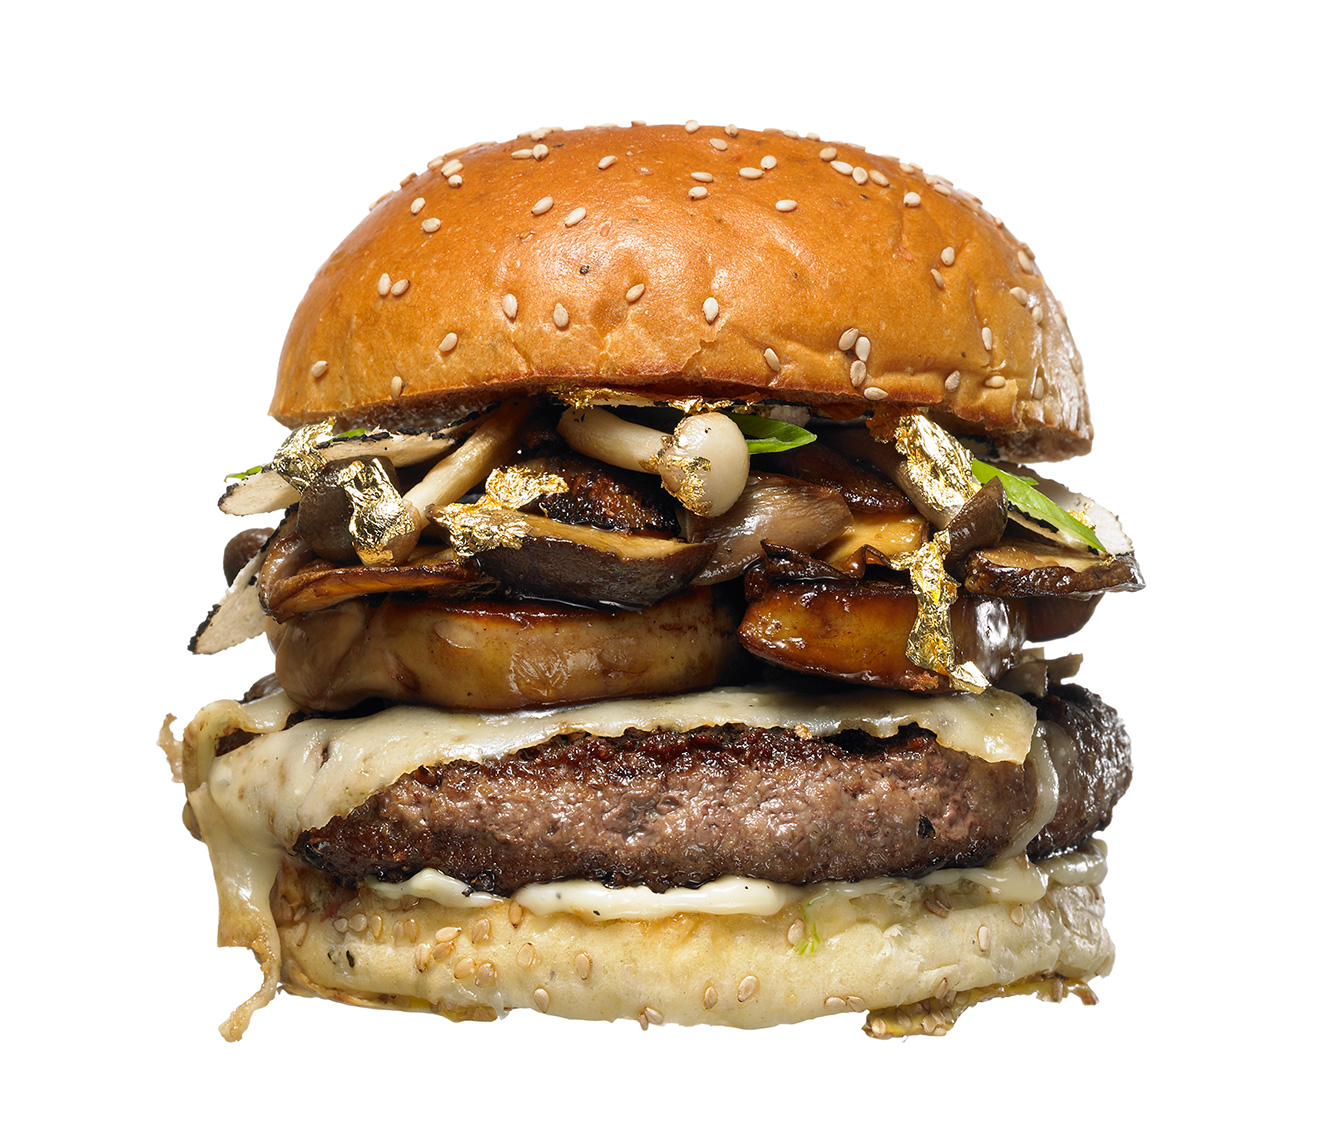 Glasshouse Assignment - Kang Kim - Food Photography - Food Network Magazine - Gold Burger